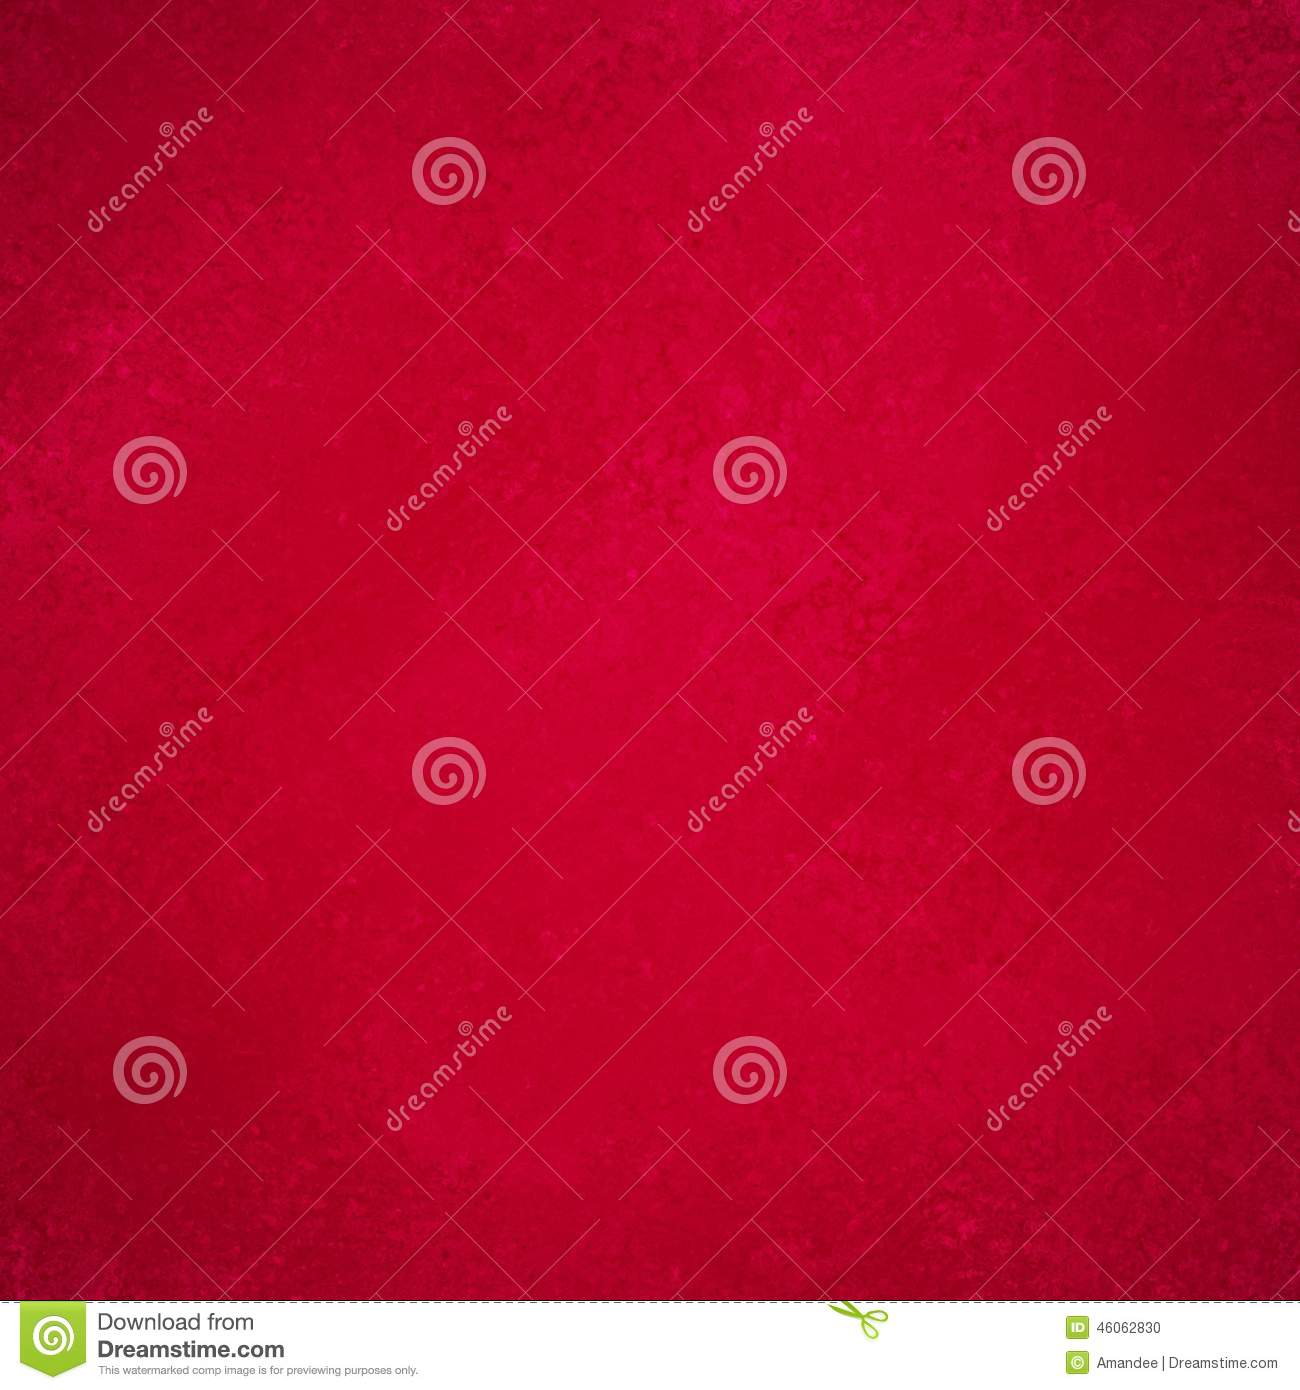 Solid Red Background Paper With Vintage Grunge Texture Design